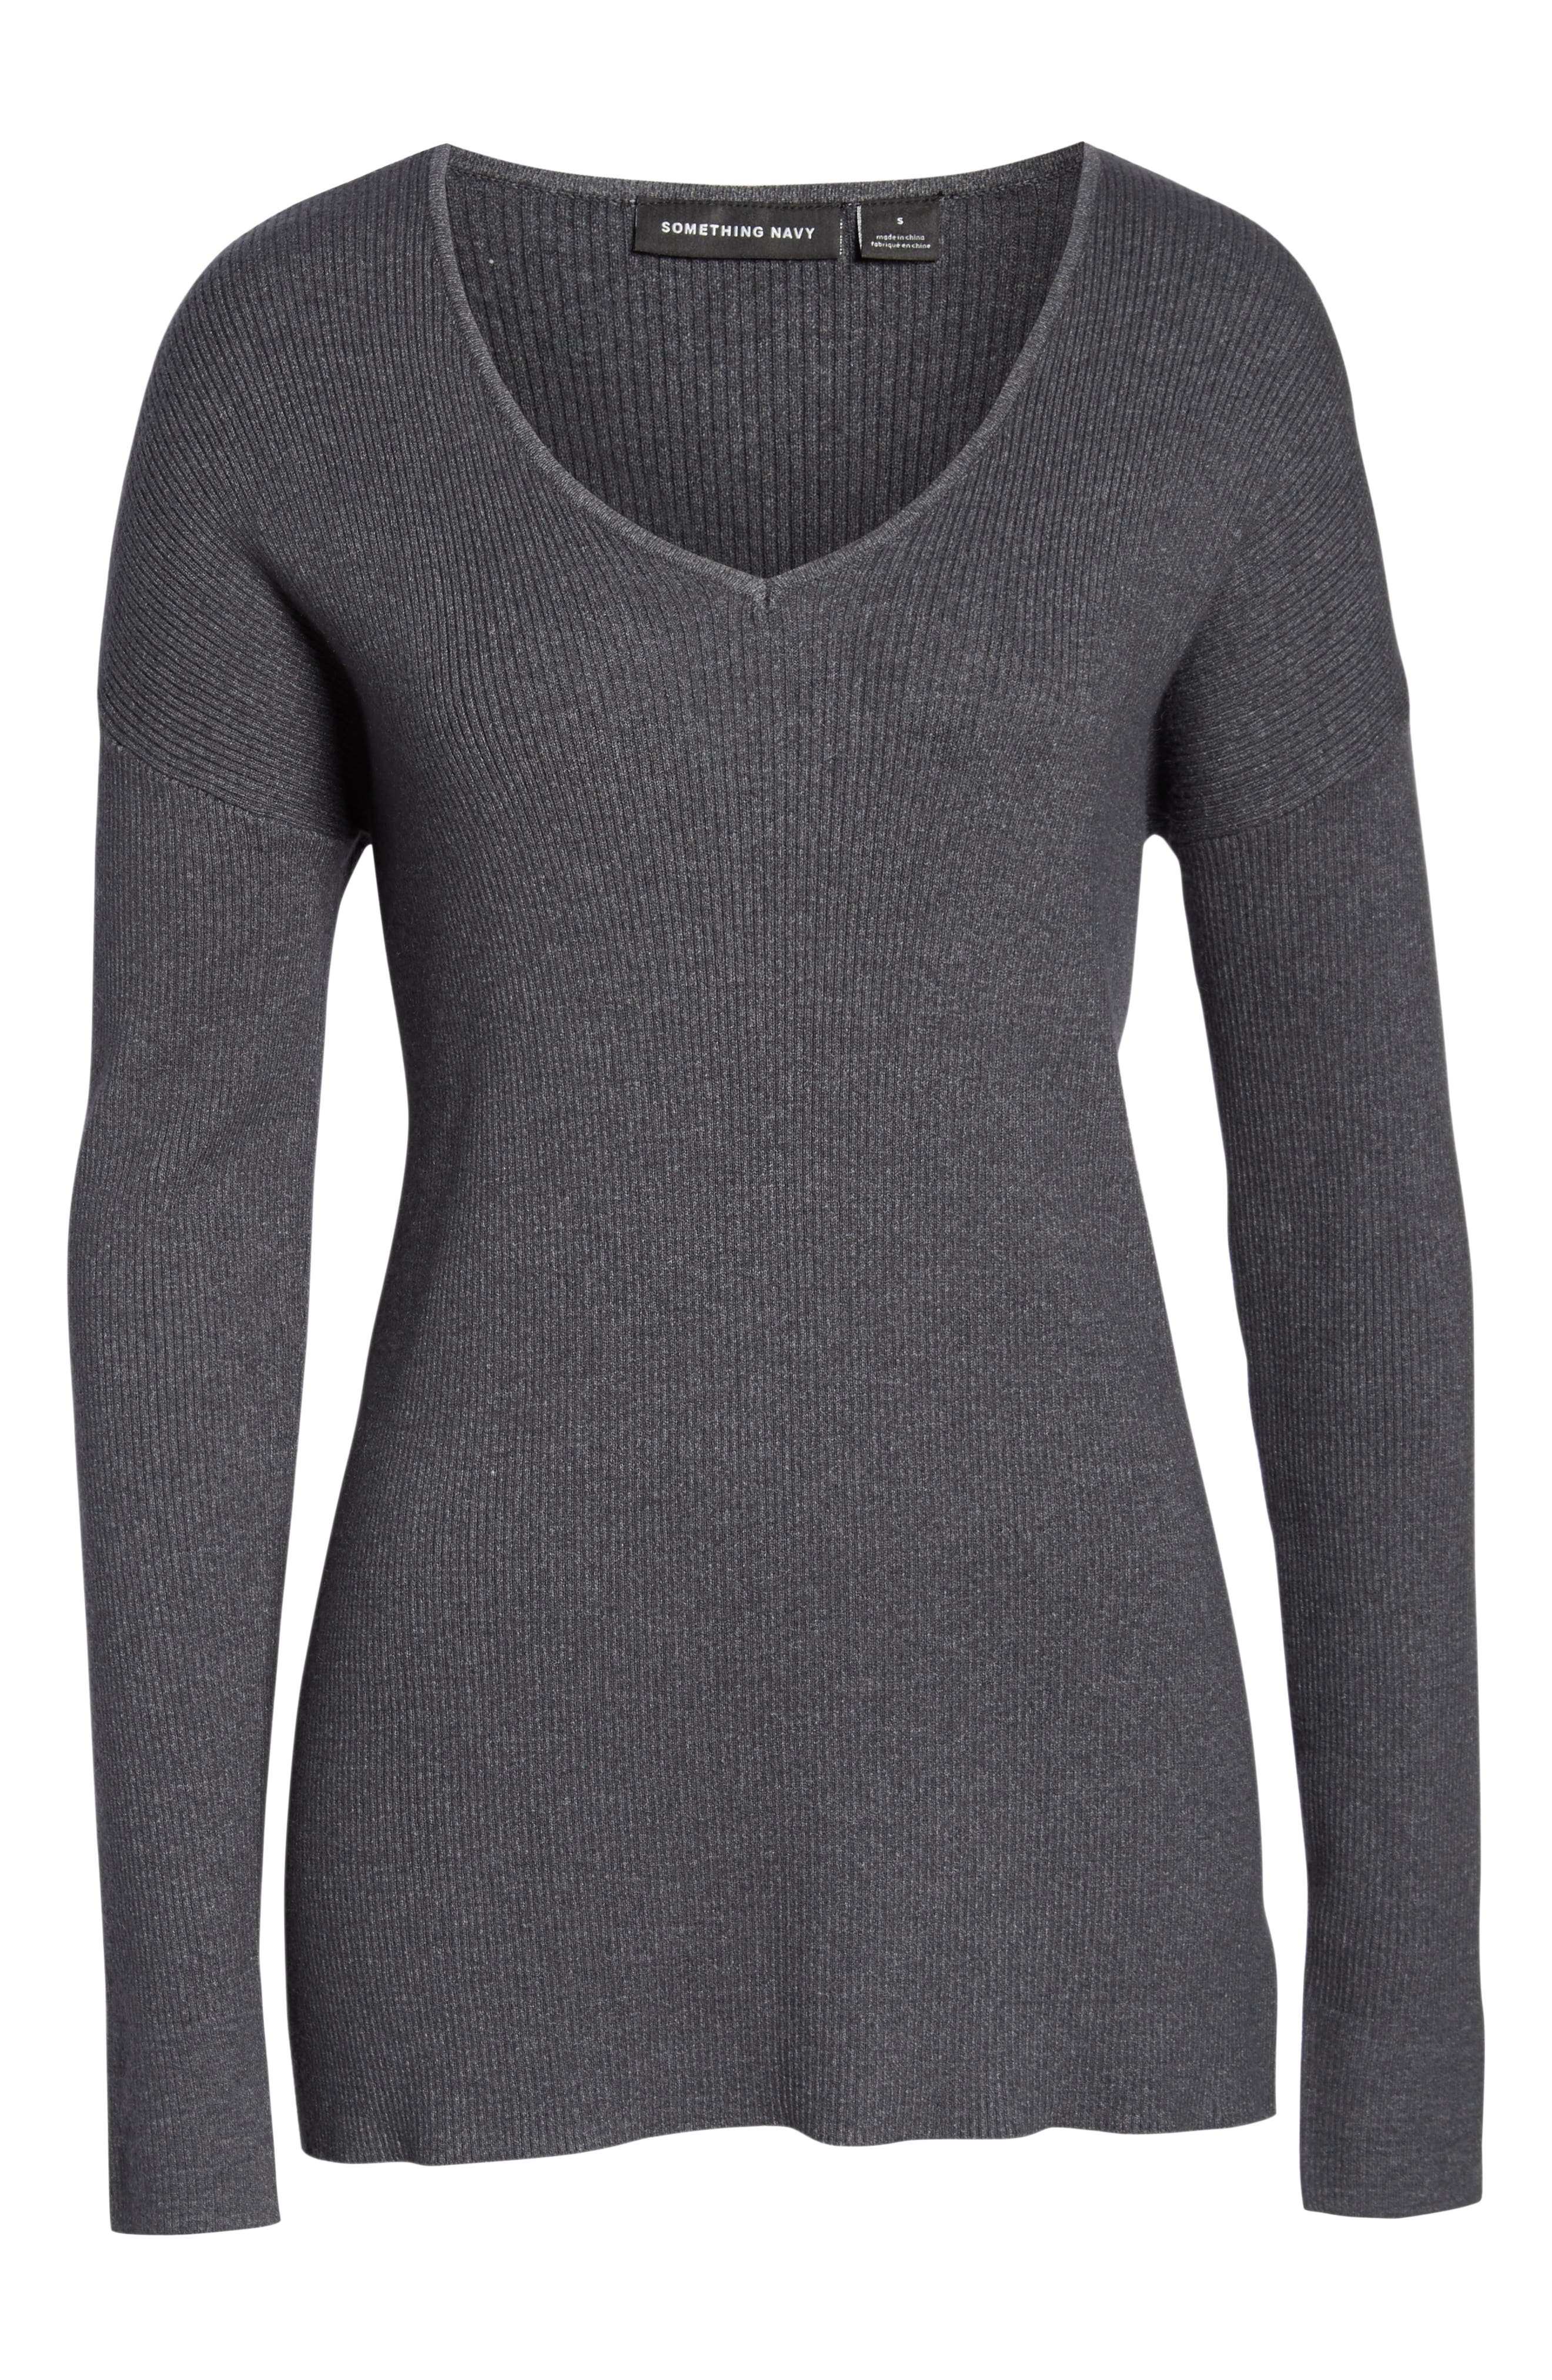 Rib Knit Pullover,                             Alternate thumbnail 6, color,                             GREY MED CHARCOAL HEATHER